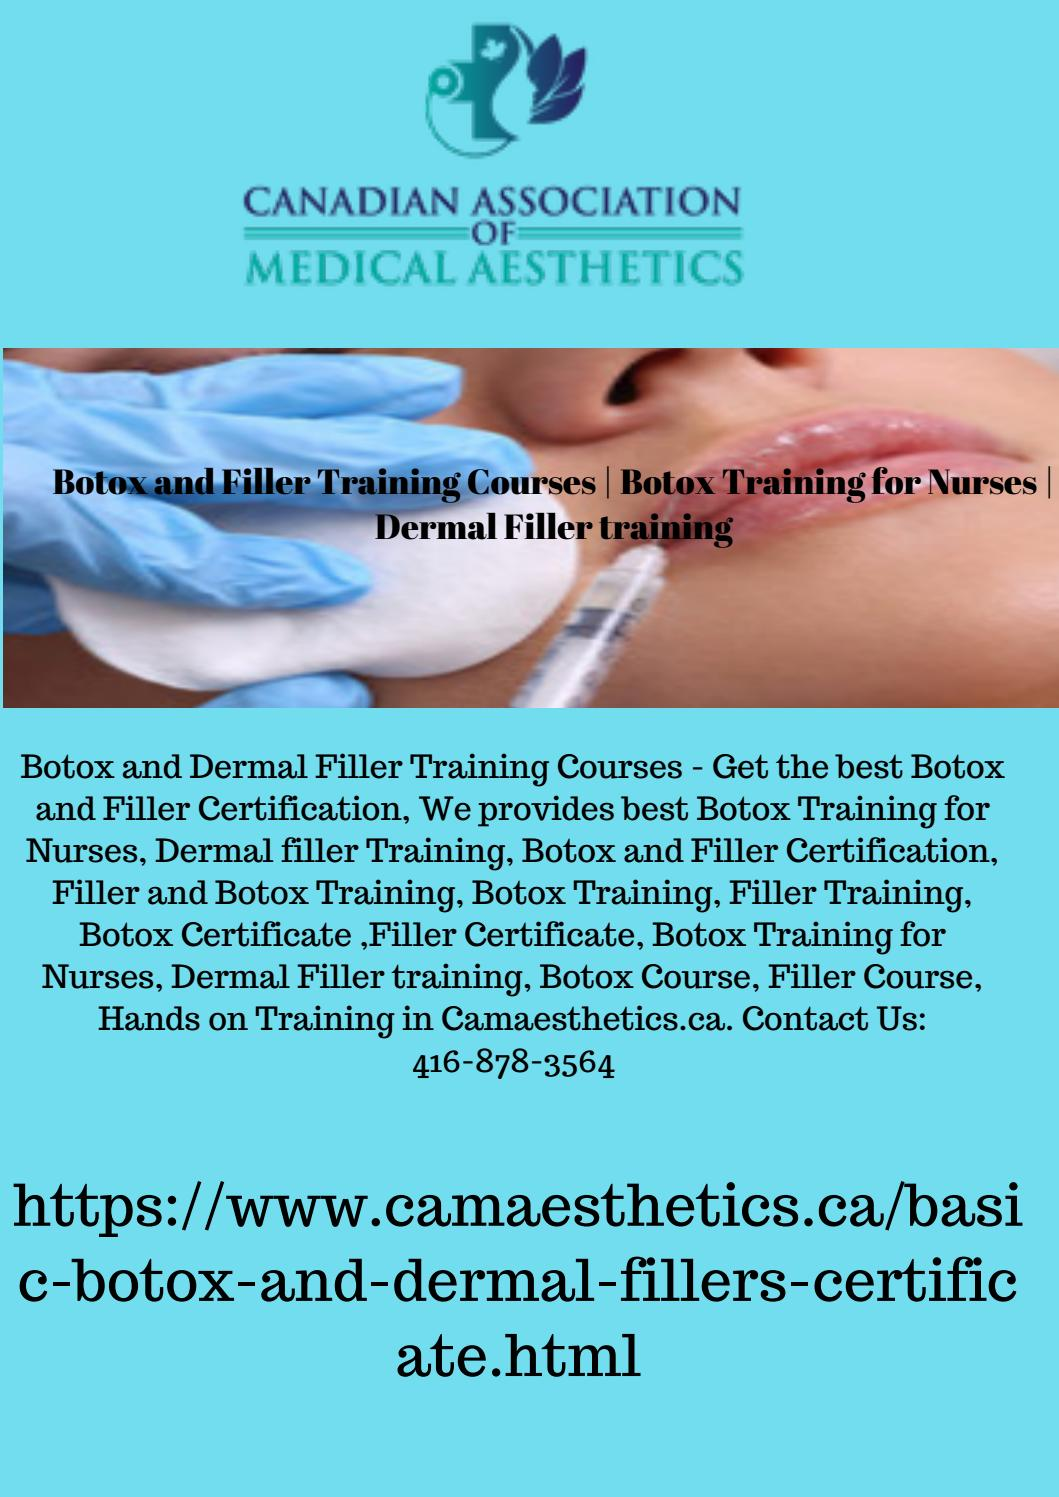 Botox and Filler Training Courses | Botox Training for Nurses